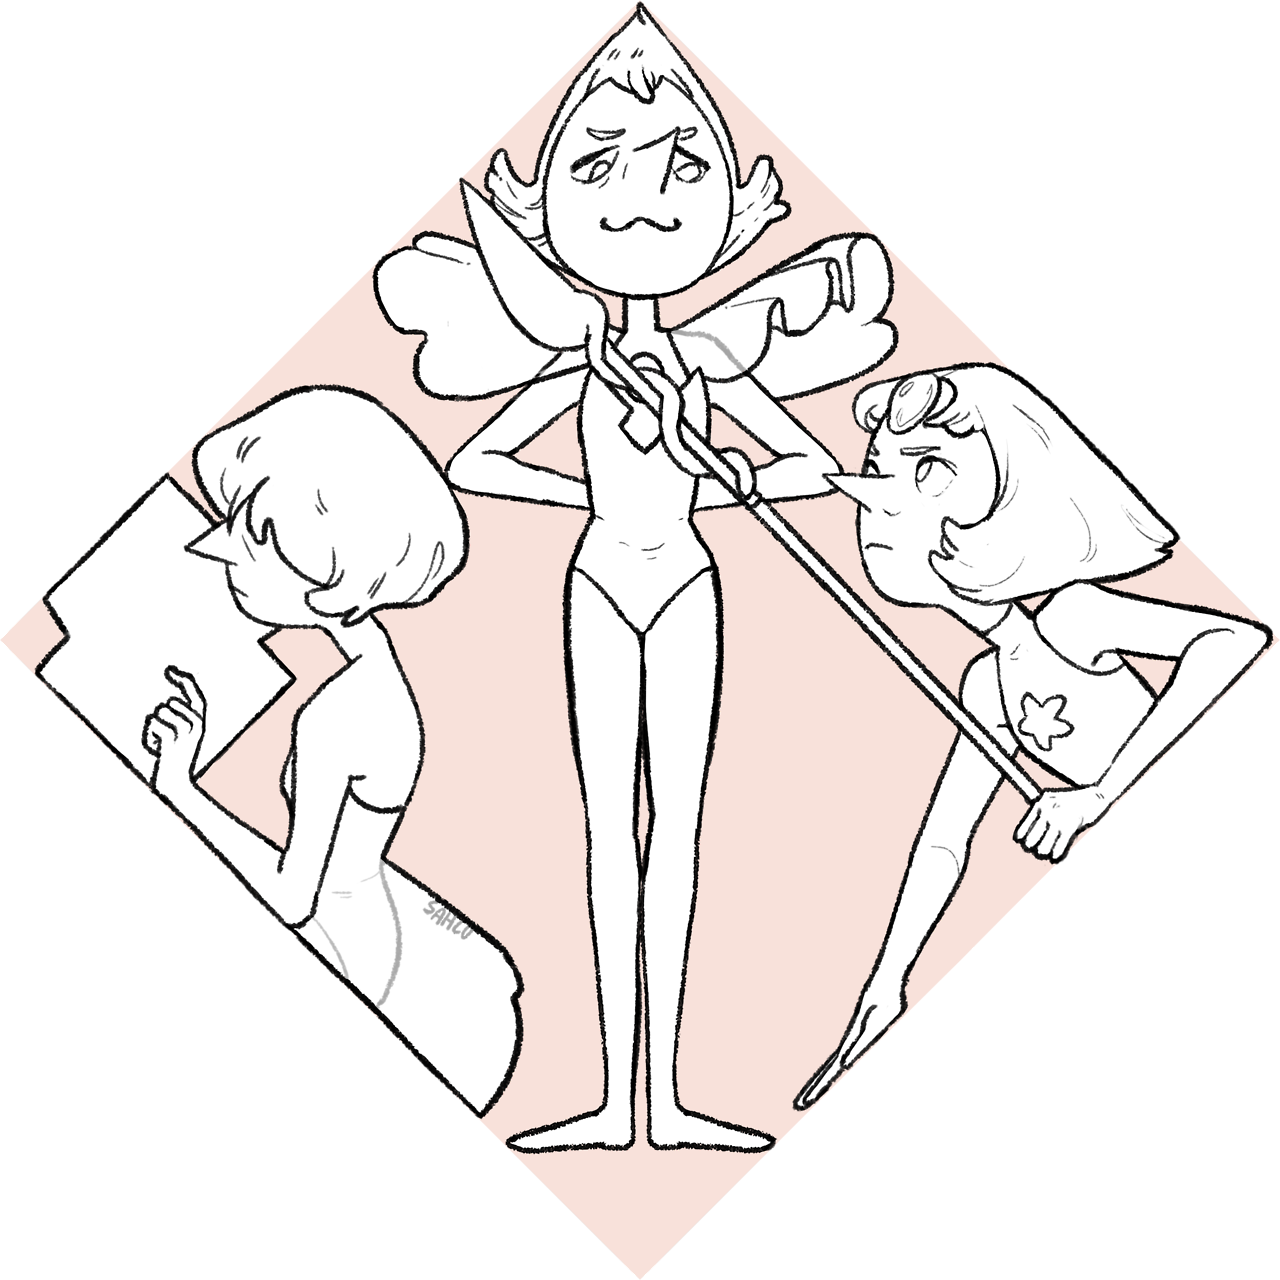 considering making a pearl sticker